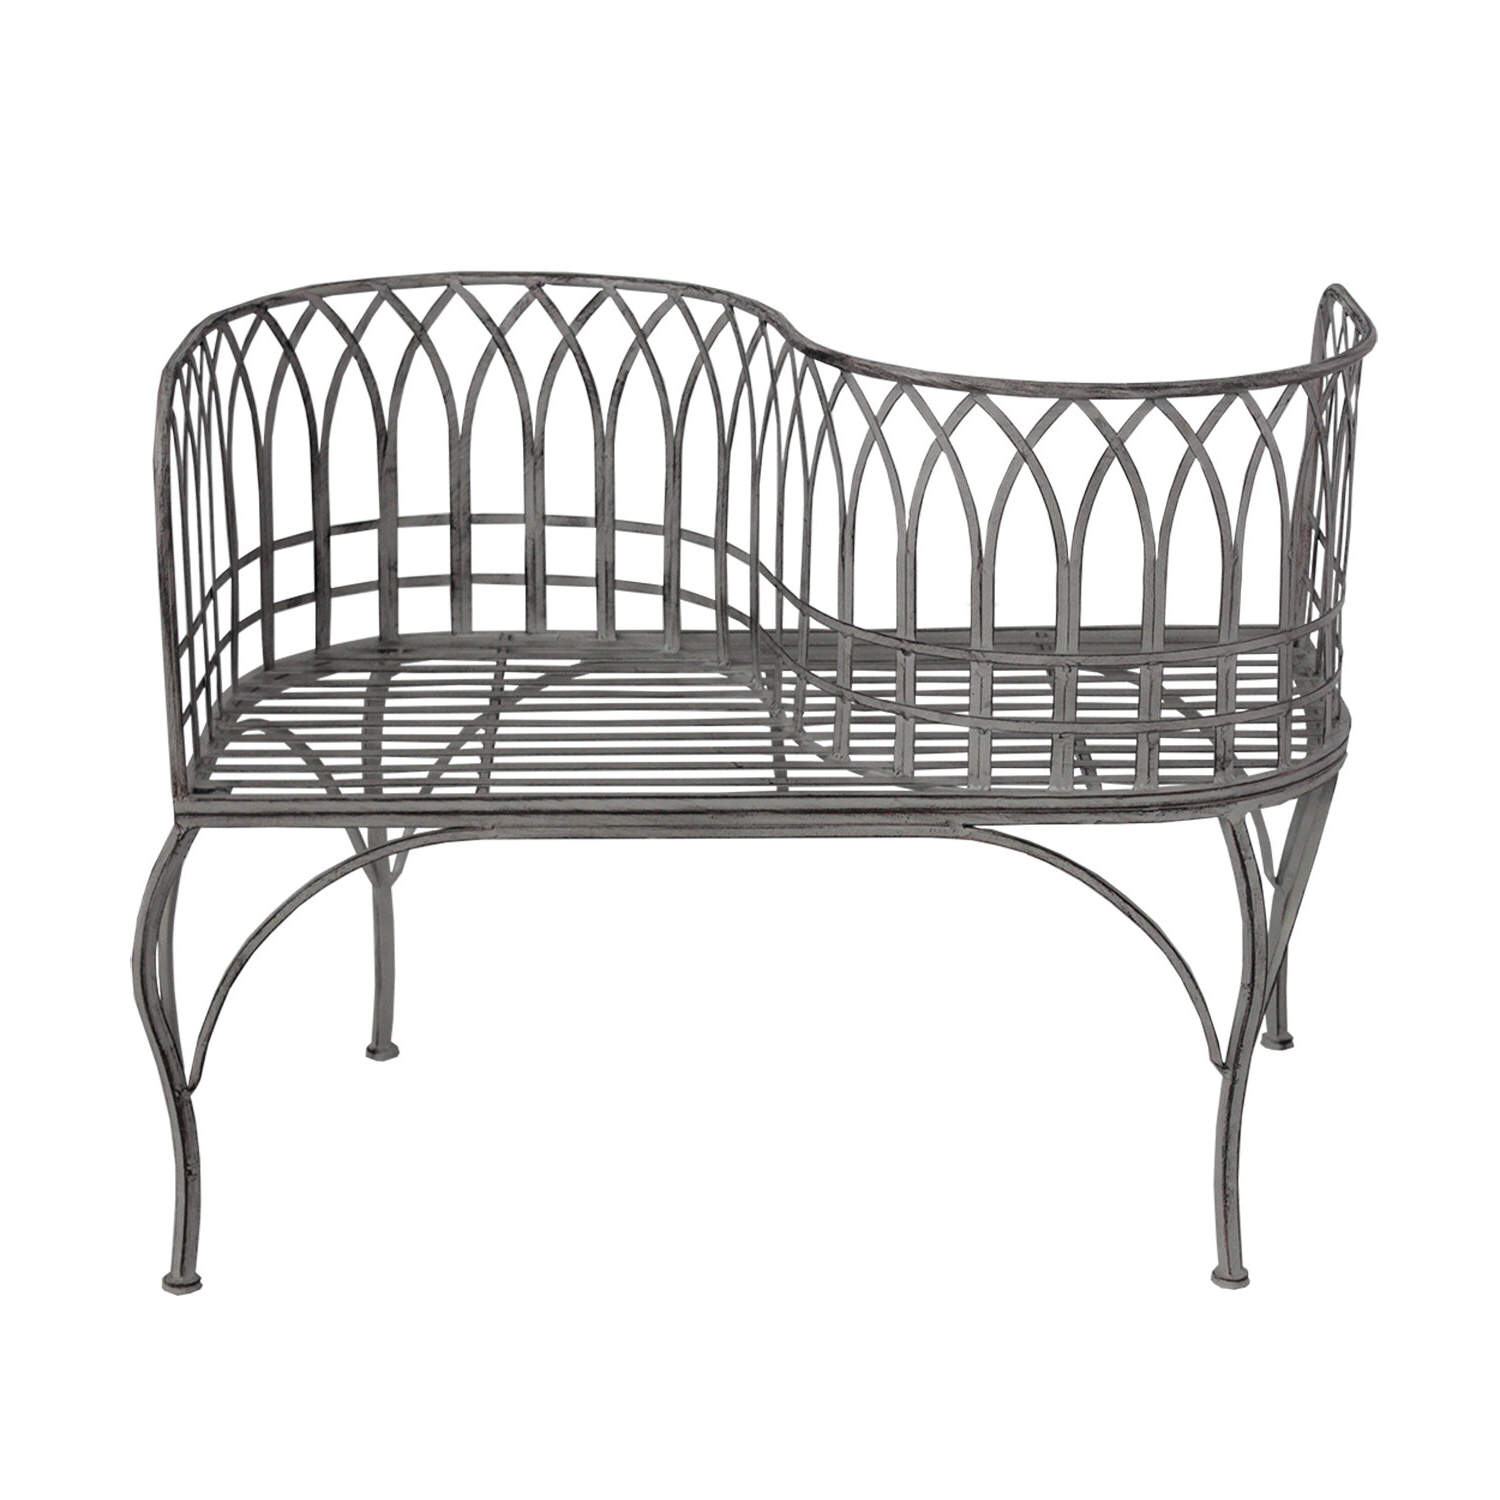 2019 Gines Curved Steel Tete A Tete Bench In Lublin Wicker Tete A Tete Benches (View 18 of 30)